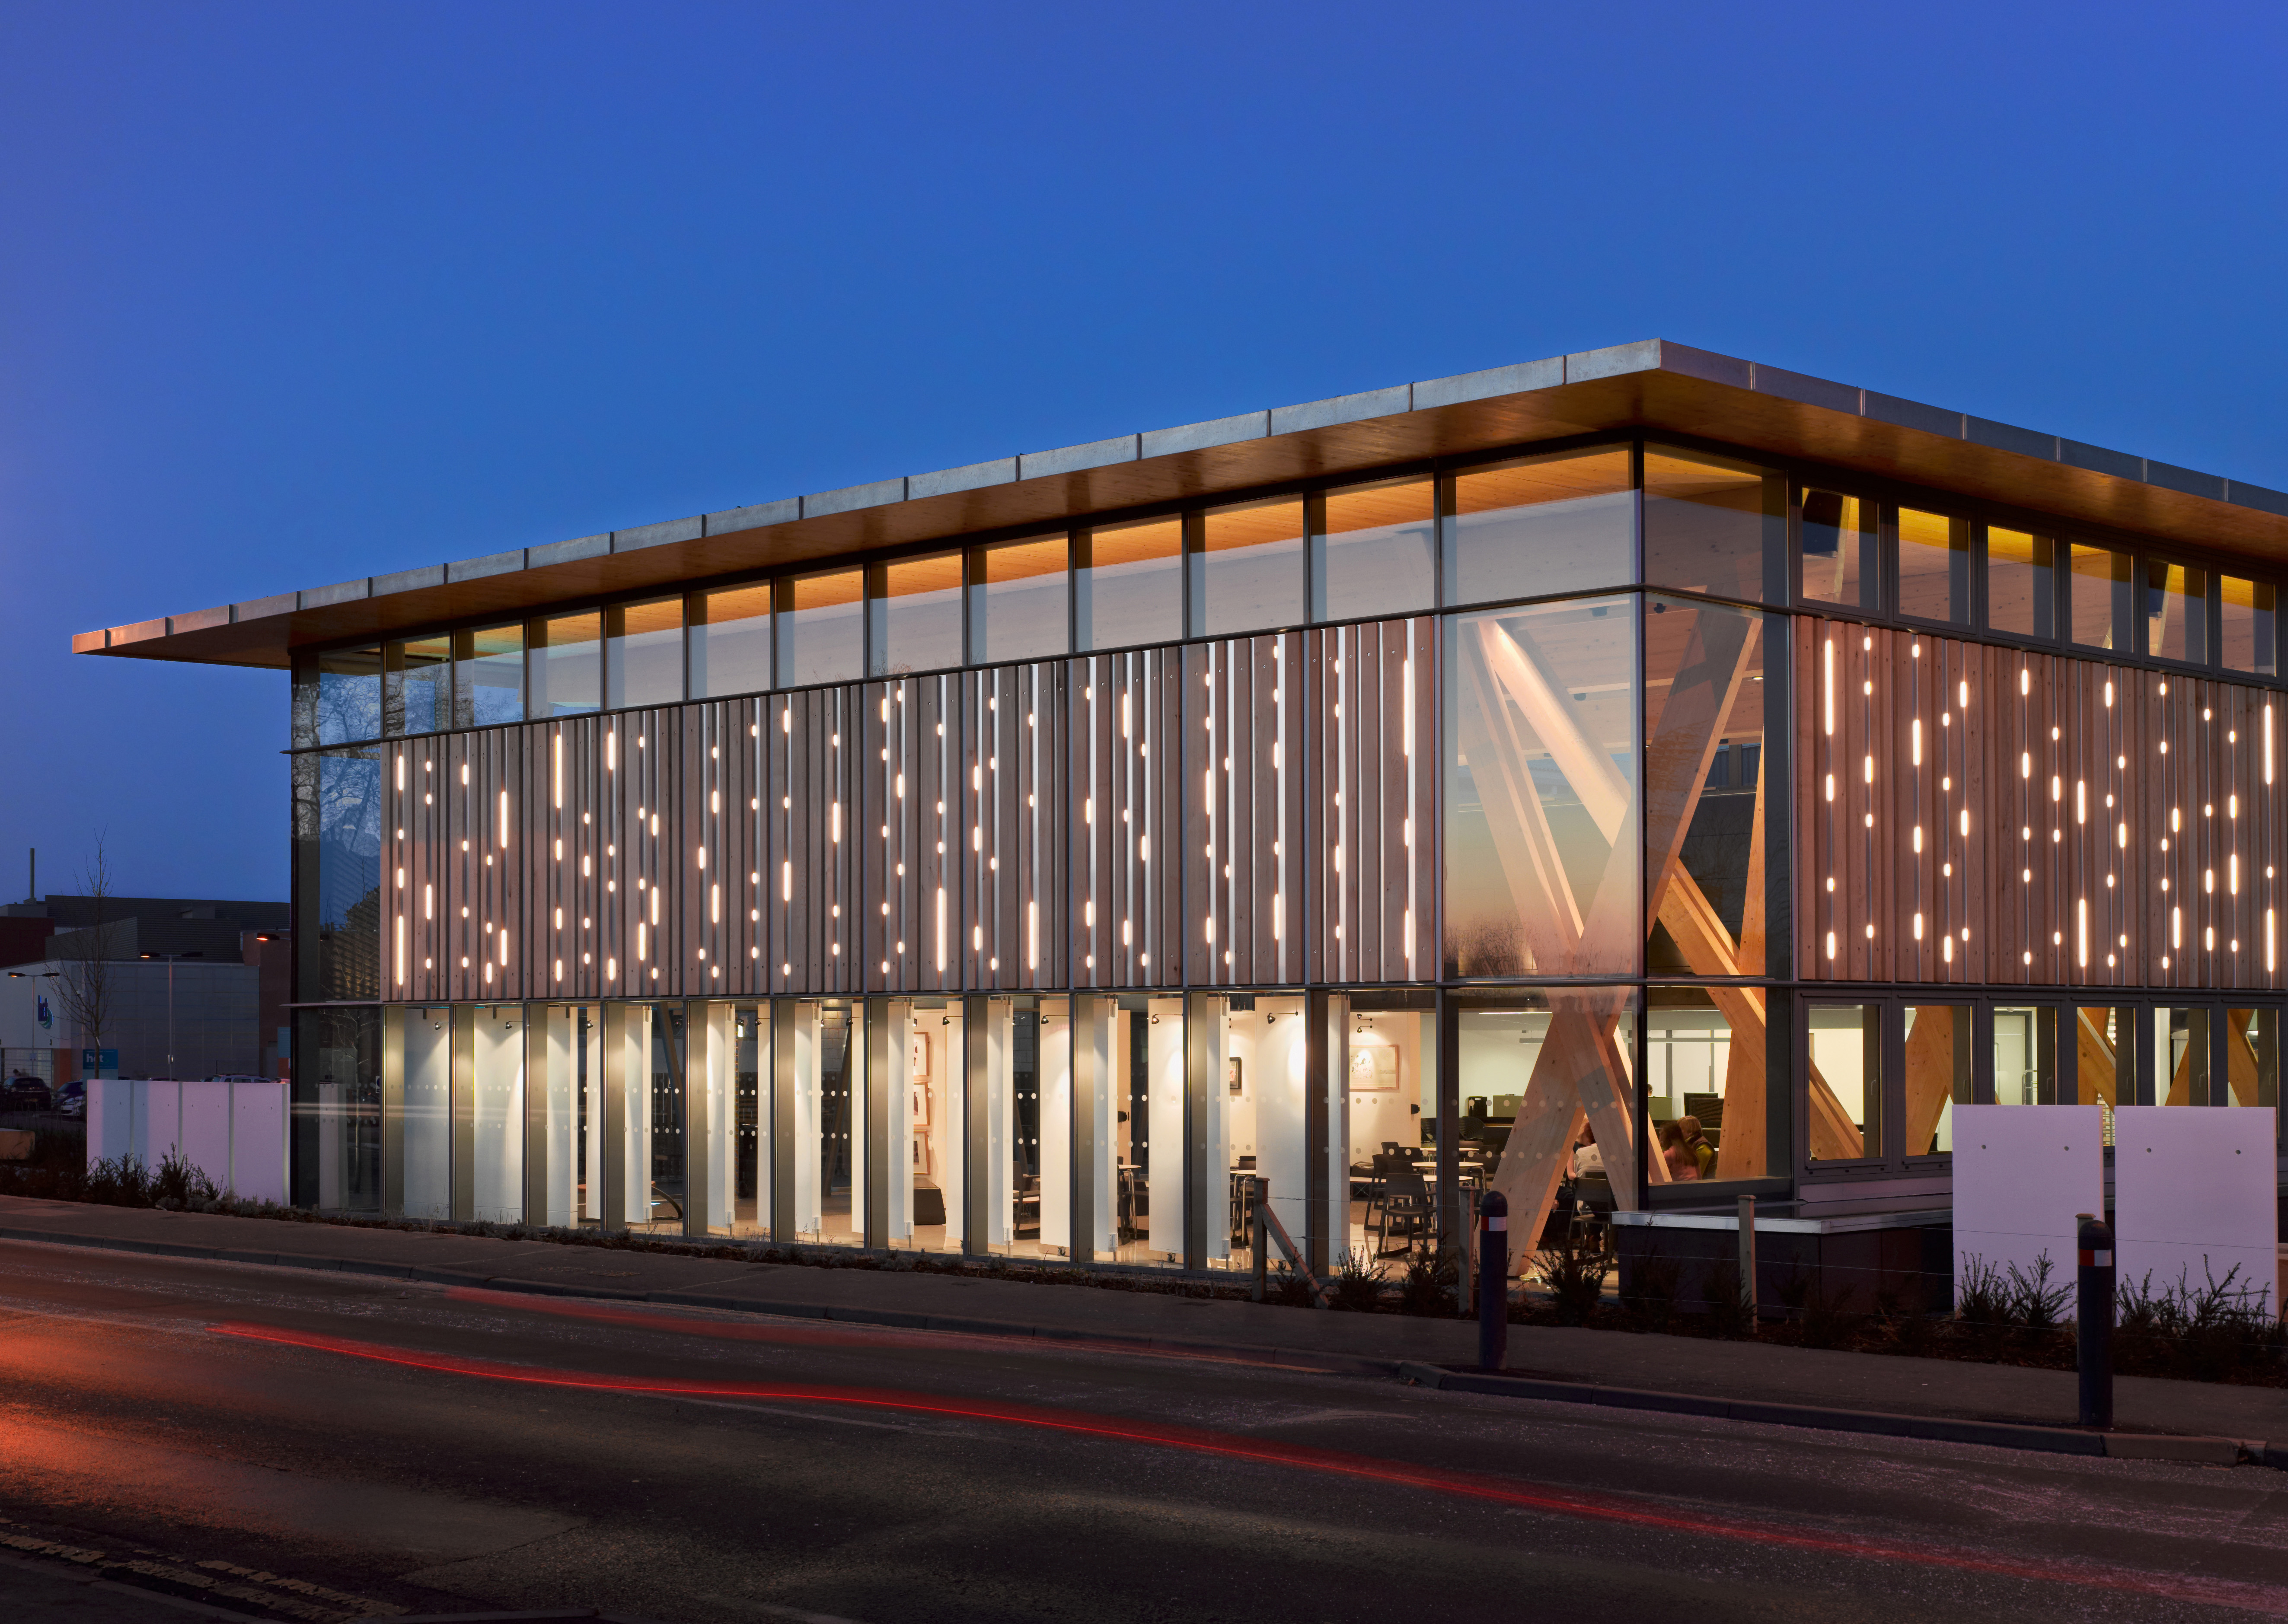 HCA Arts Space Dusk Photograph LED Lighting Timber Cladding Structure